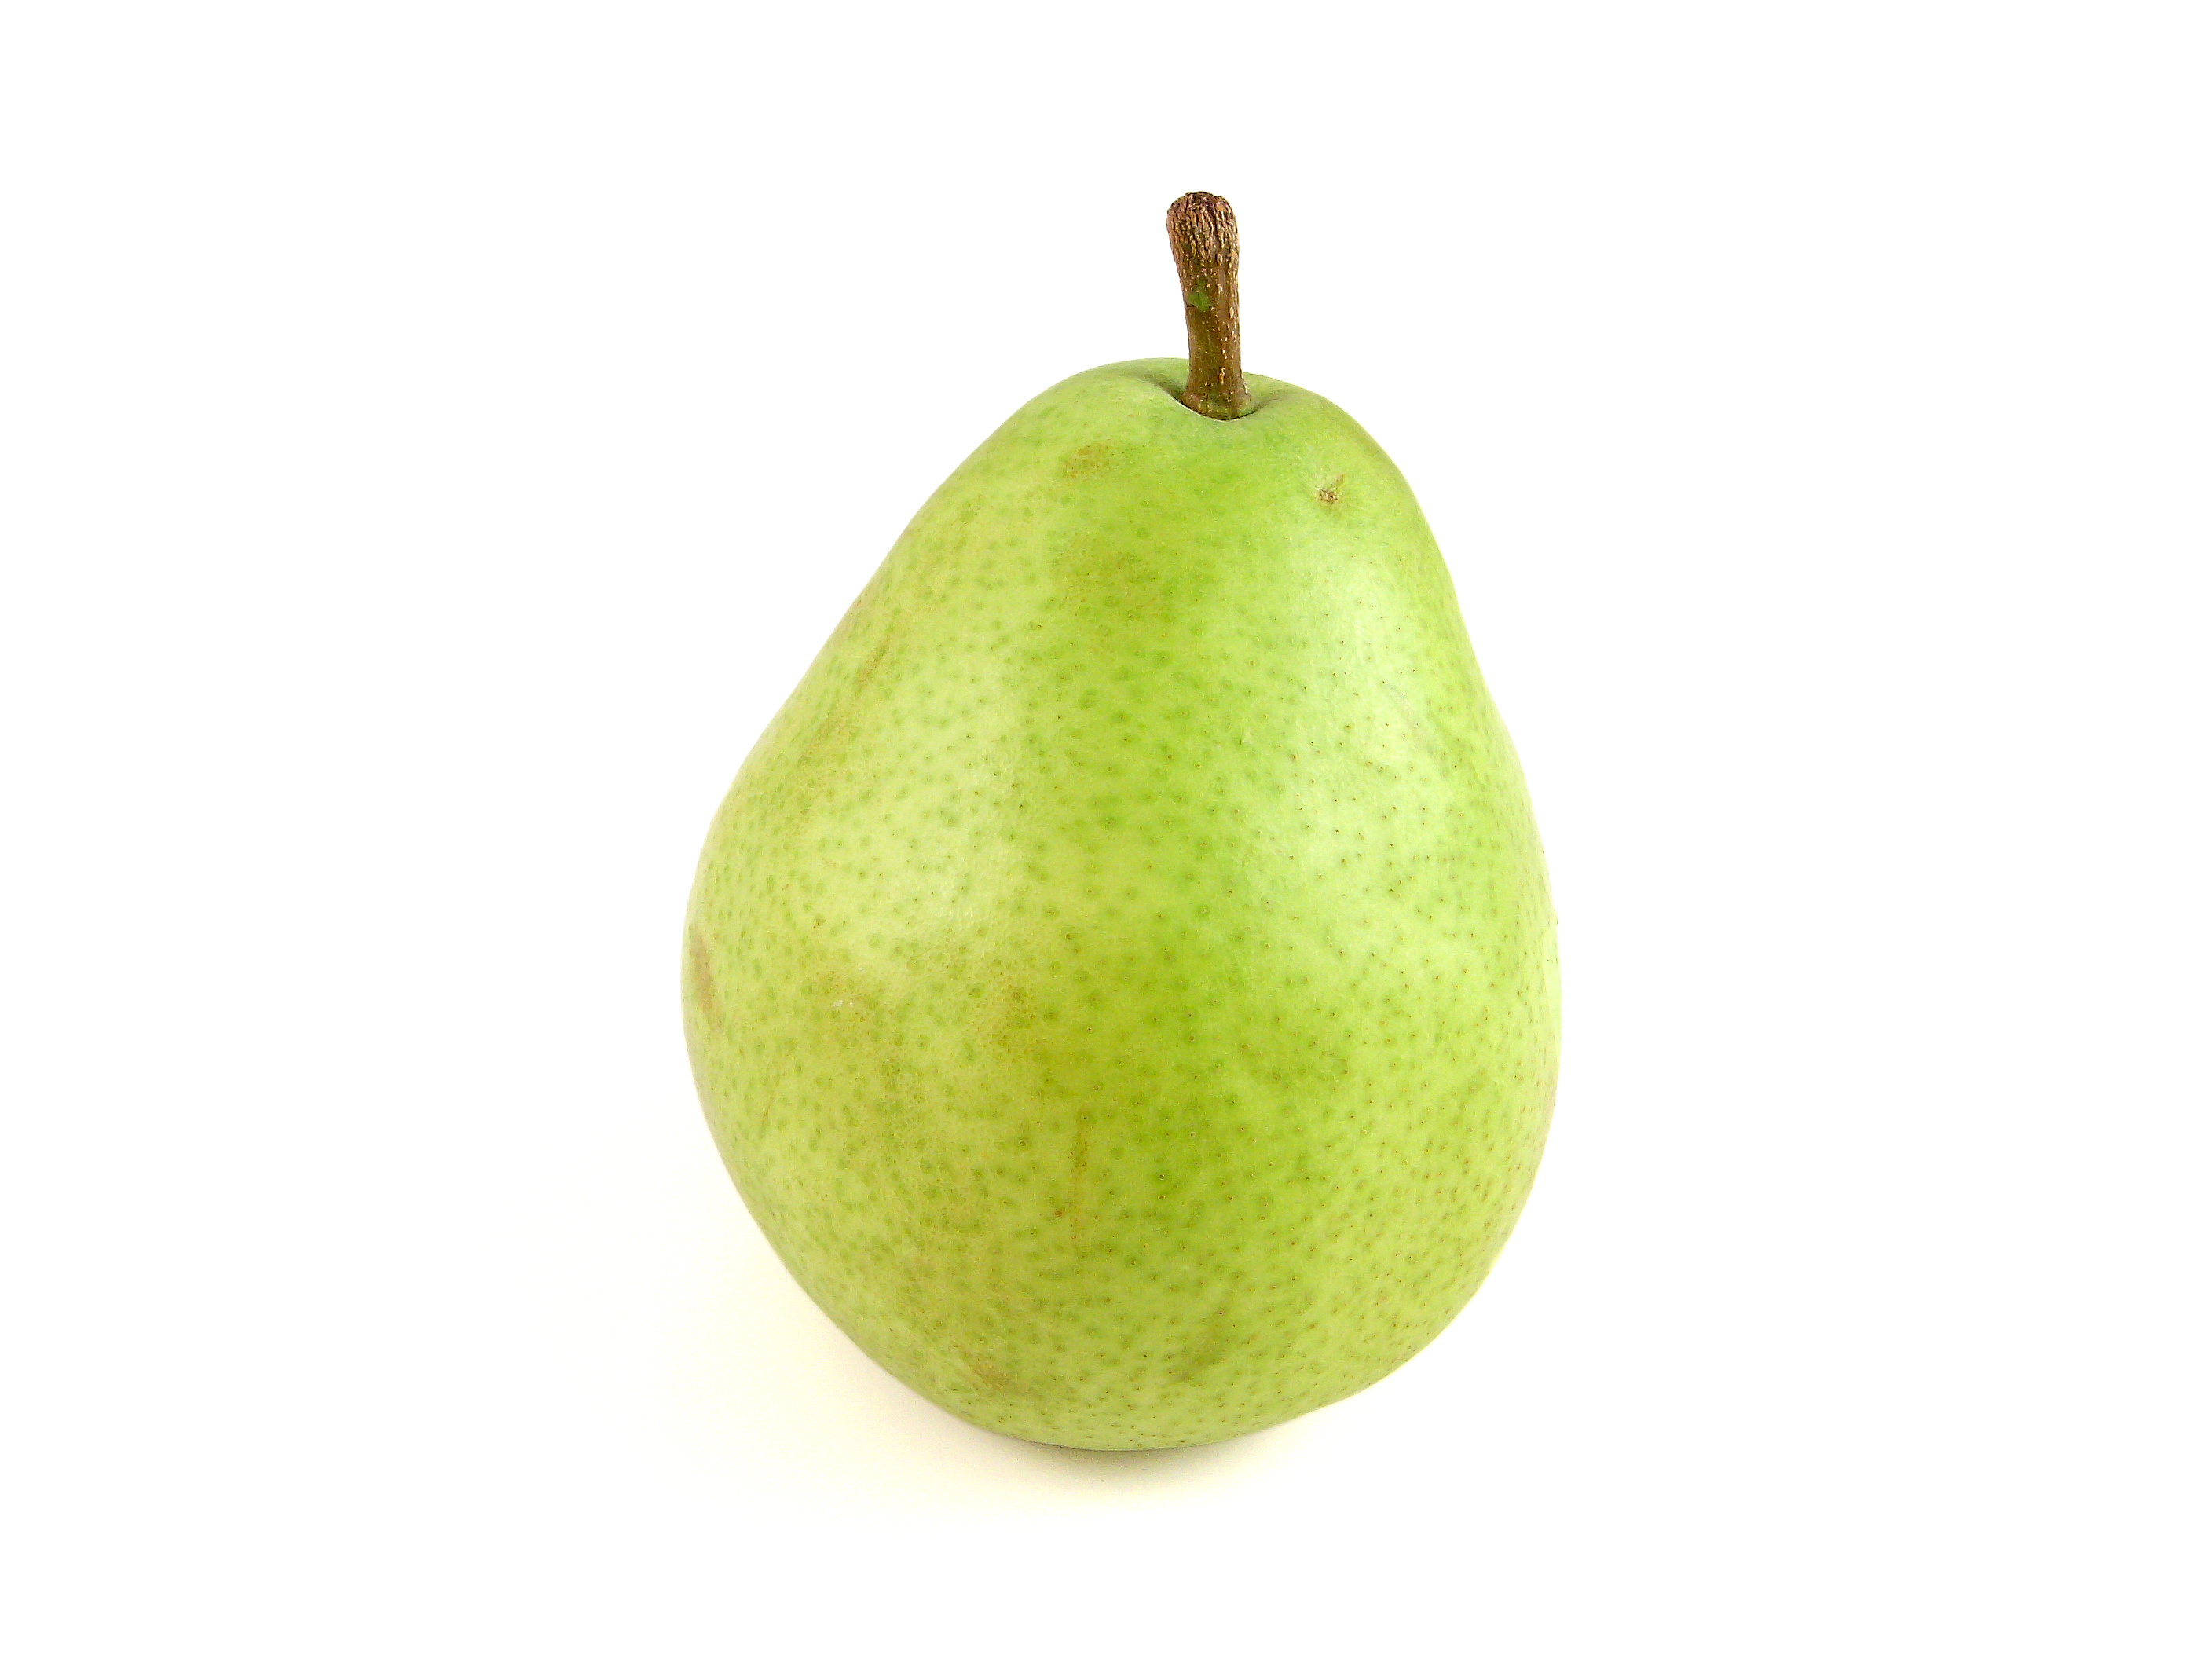 Green Pear Fruit 345.57 Kb